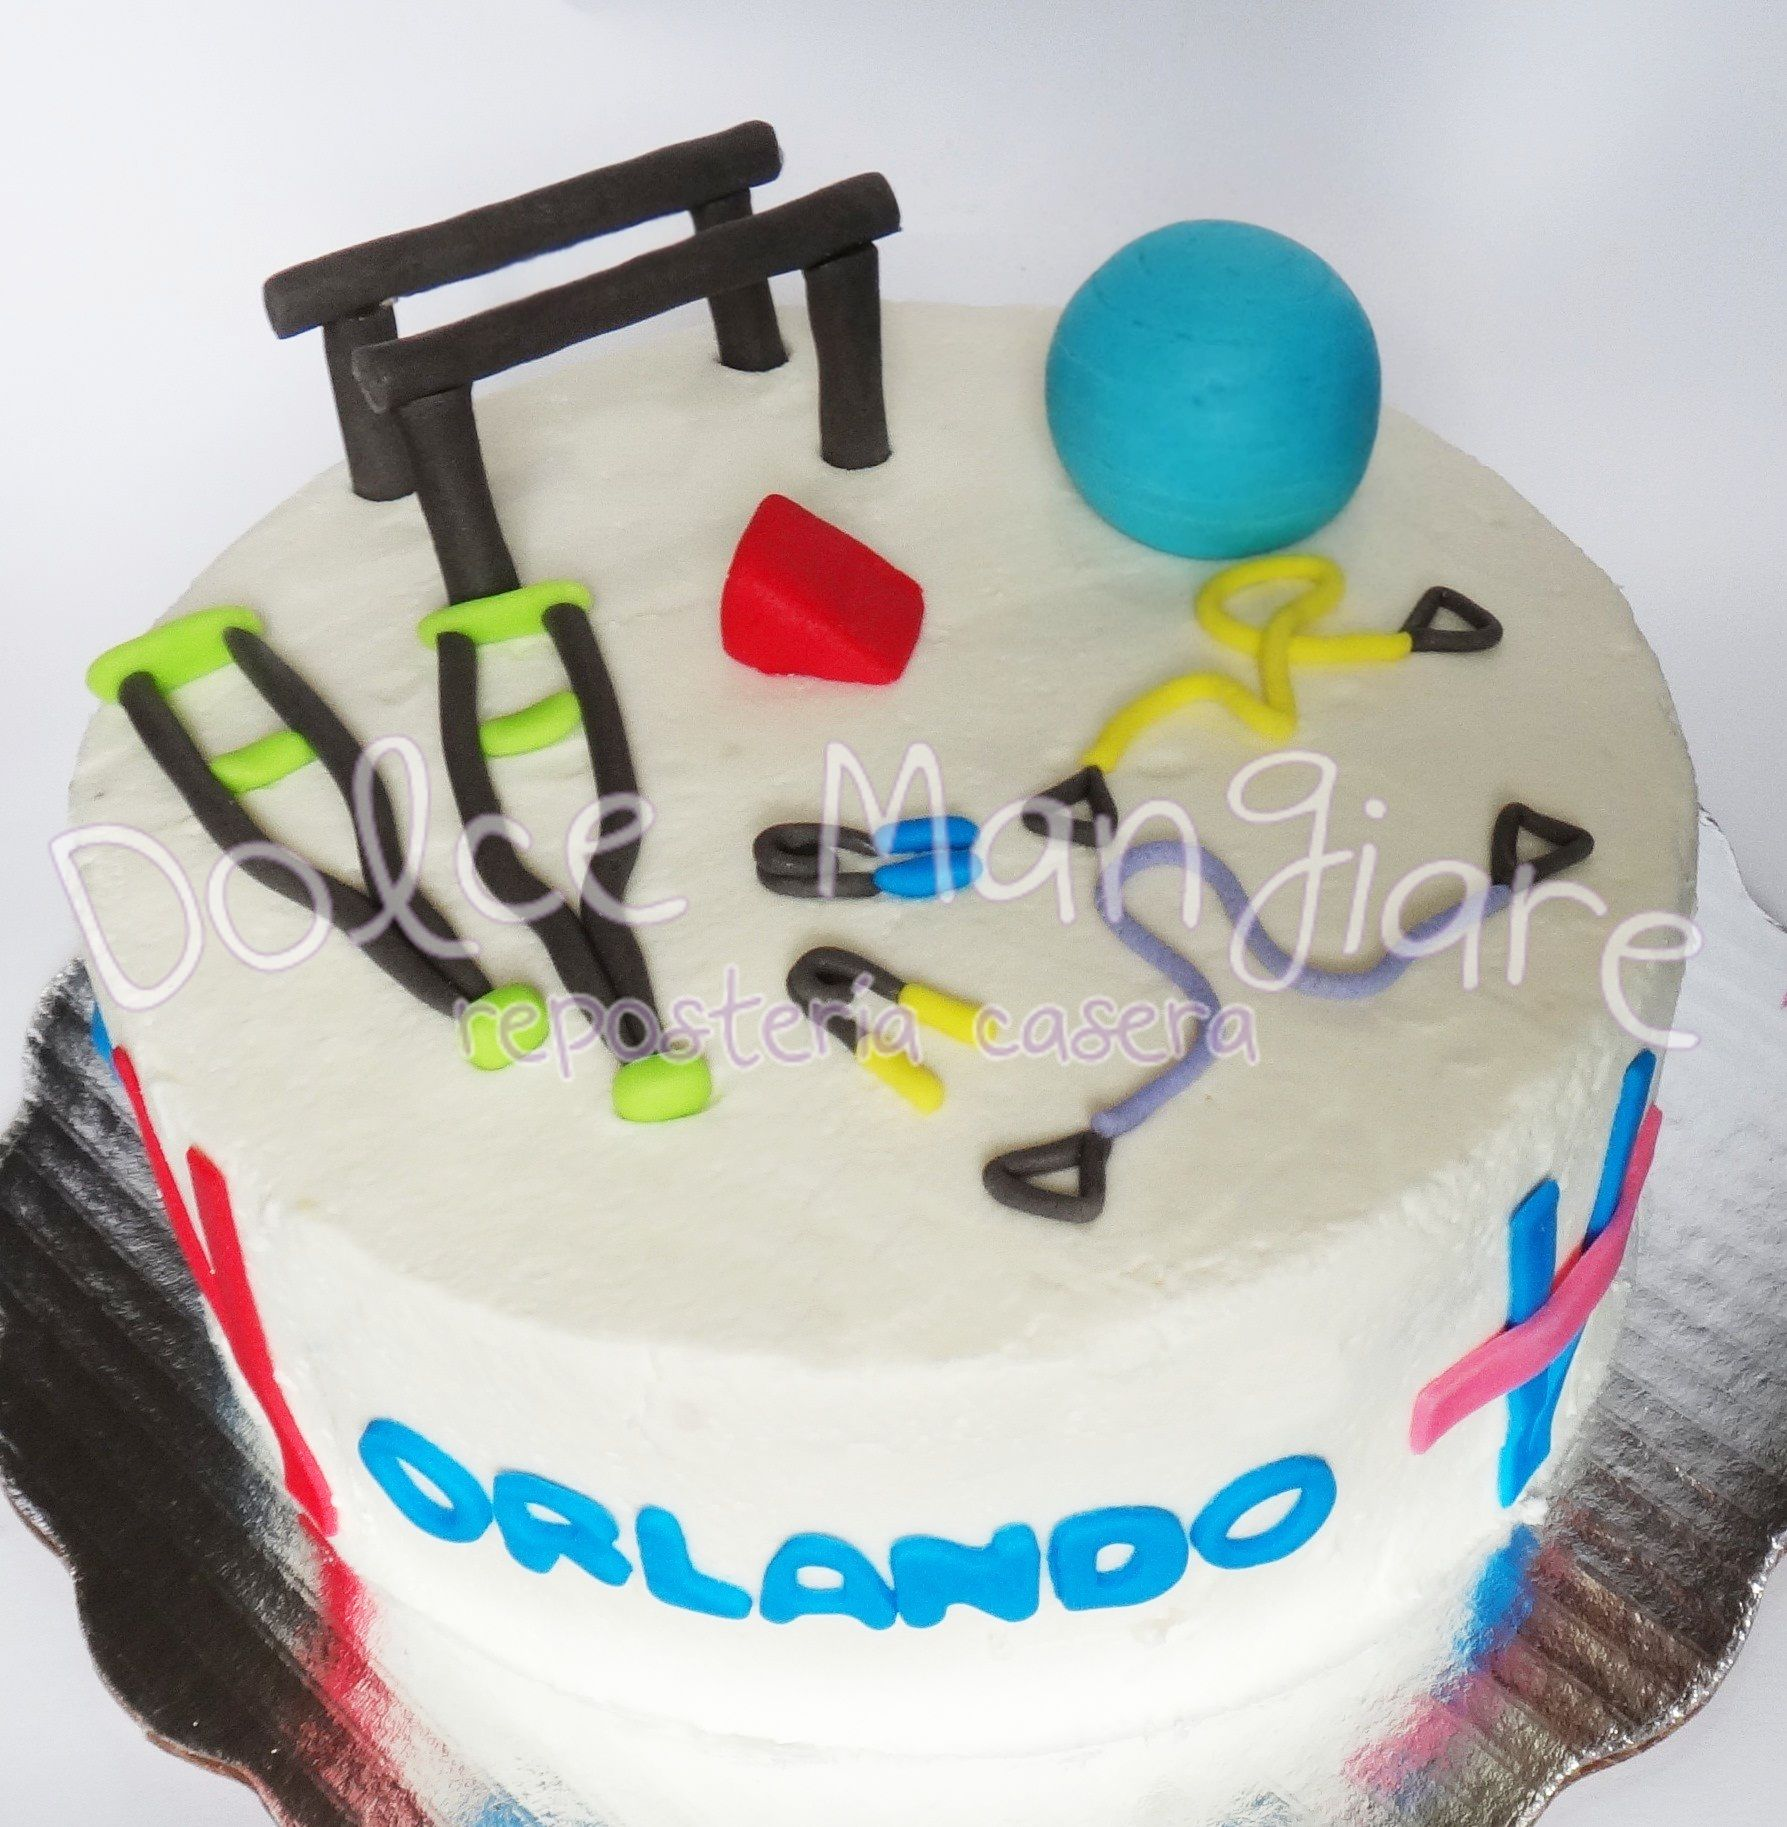 Pastel De Fisioterapia Physiotherapy Cake